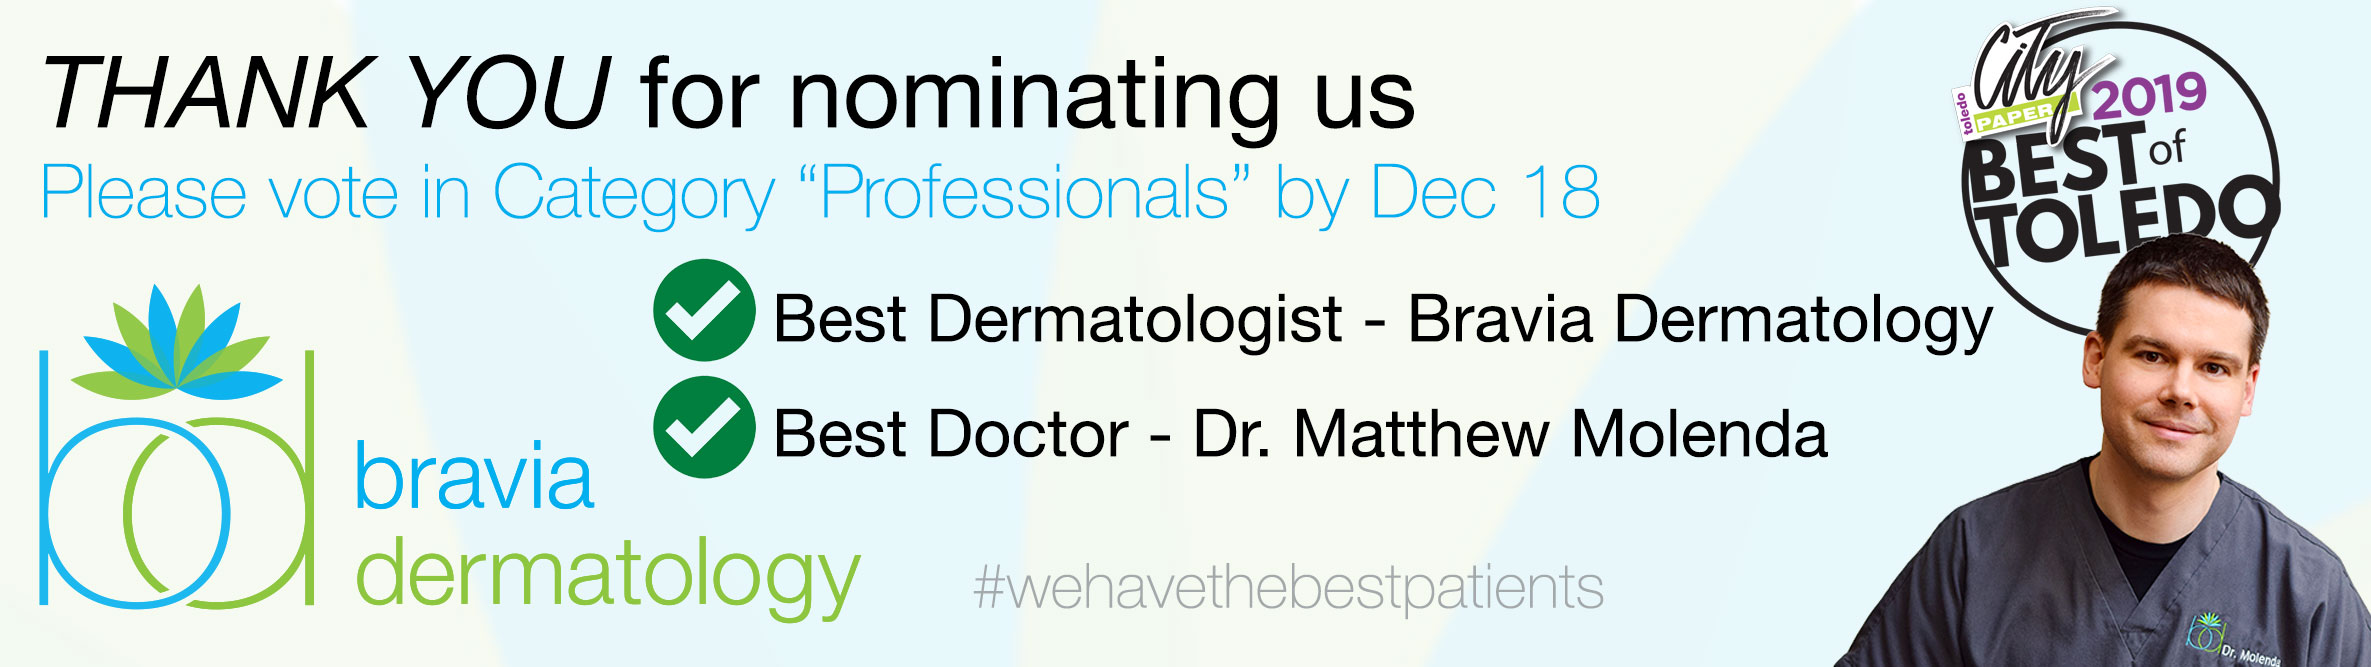 Vote for Bravia Dermatology Best of Toledo!